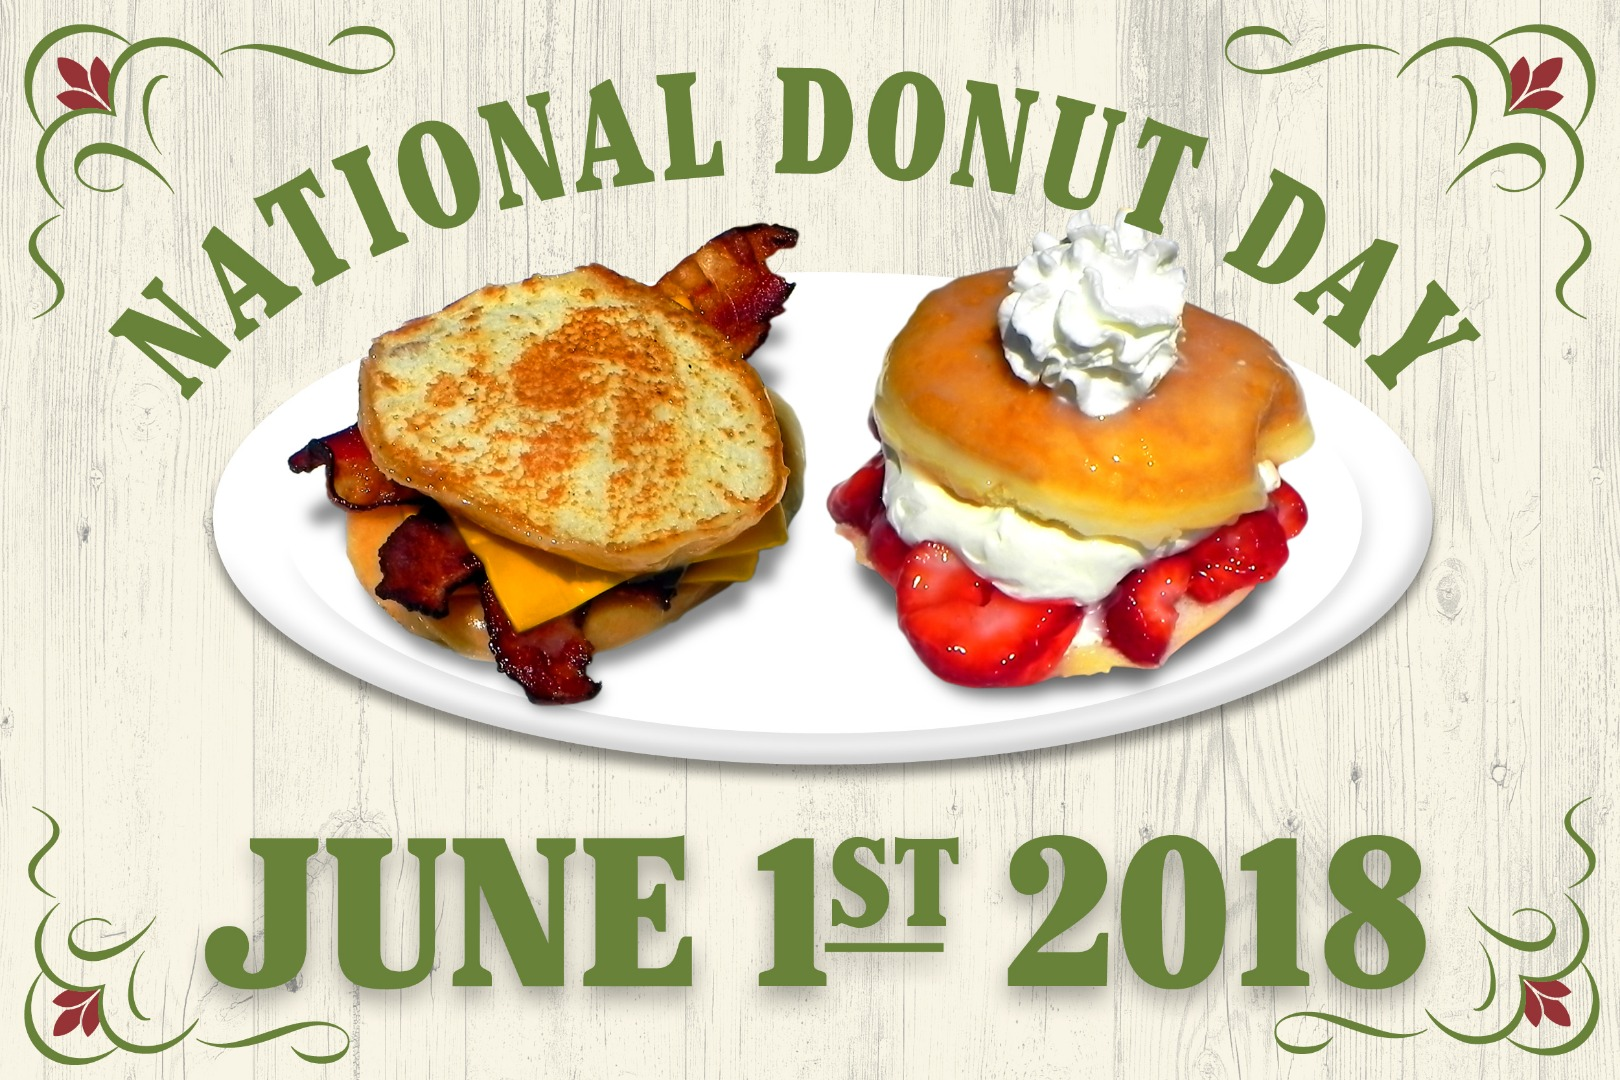 Restaurants-18-06-Donut Day-Web.jpg